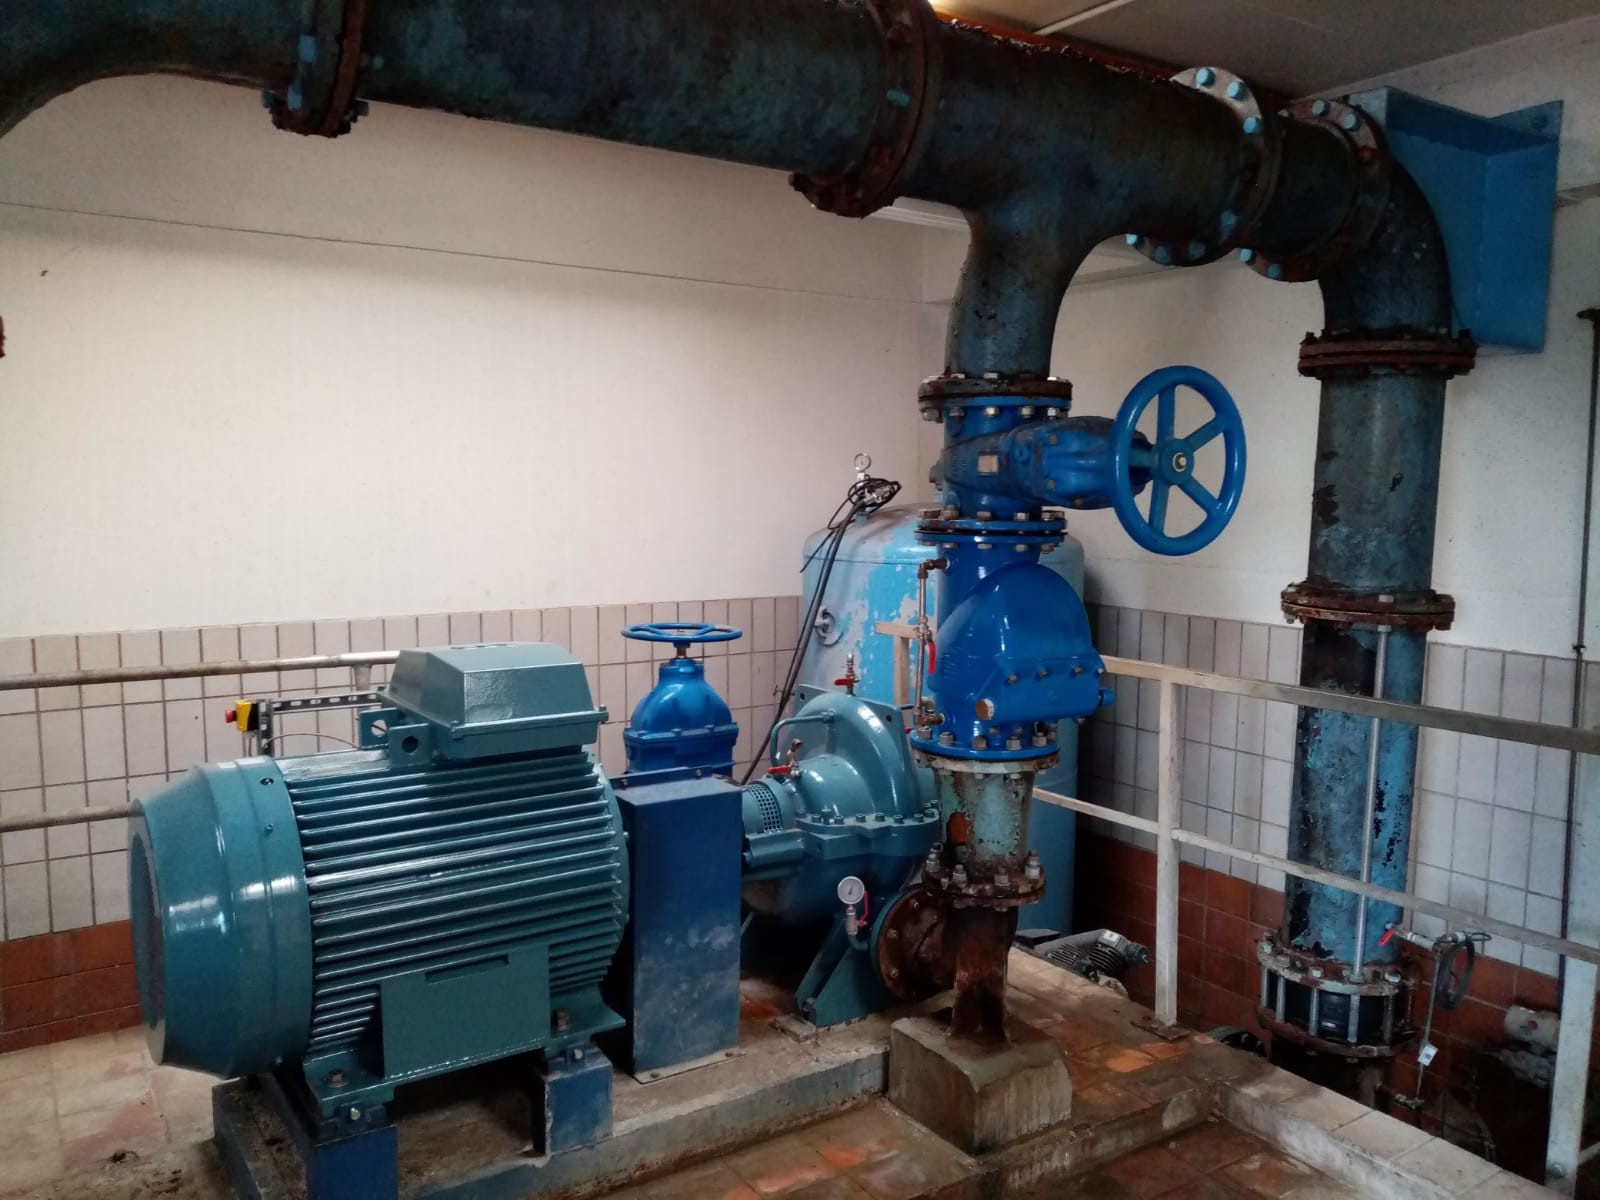 Pump with AVK pressure management device, saving 22 hours of pumping each day